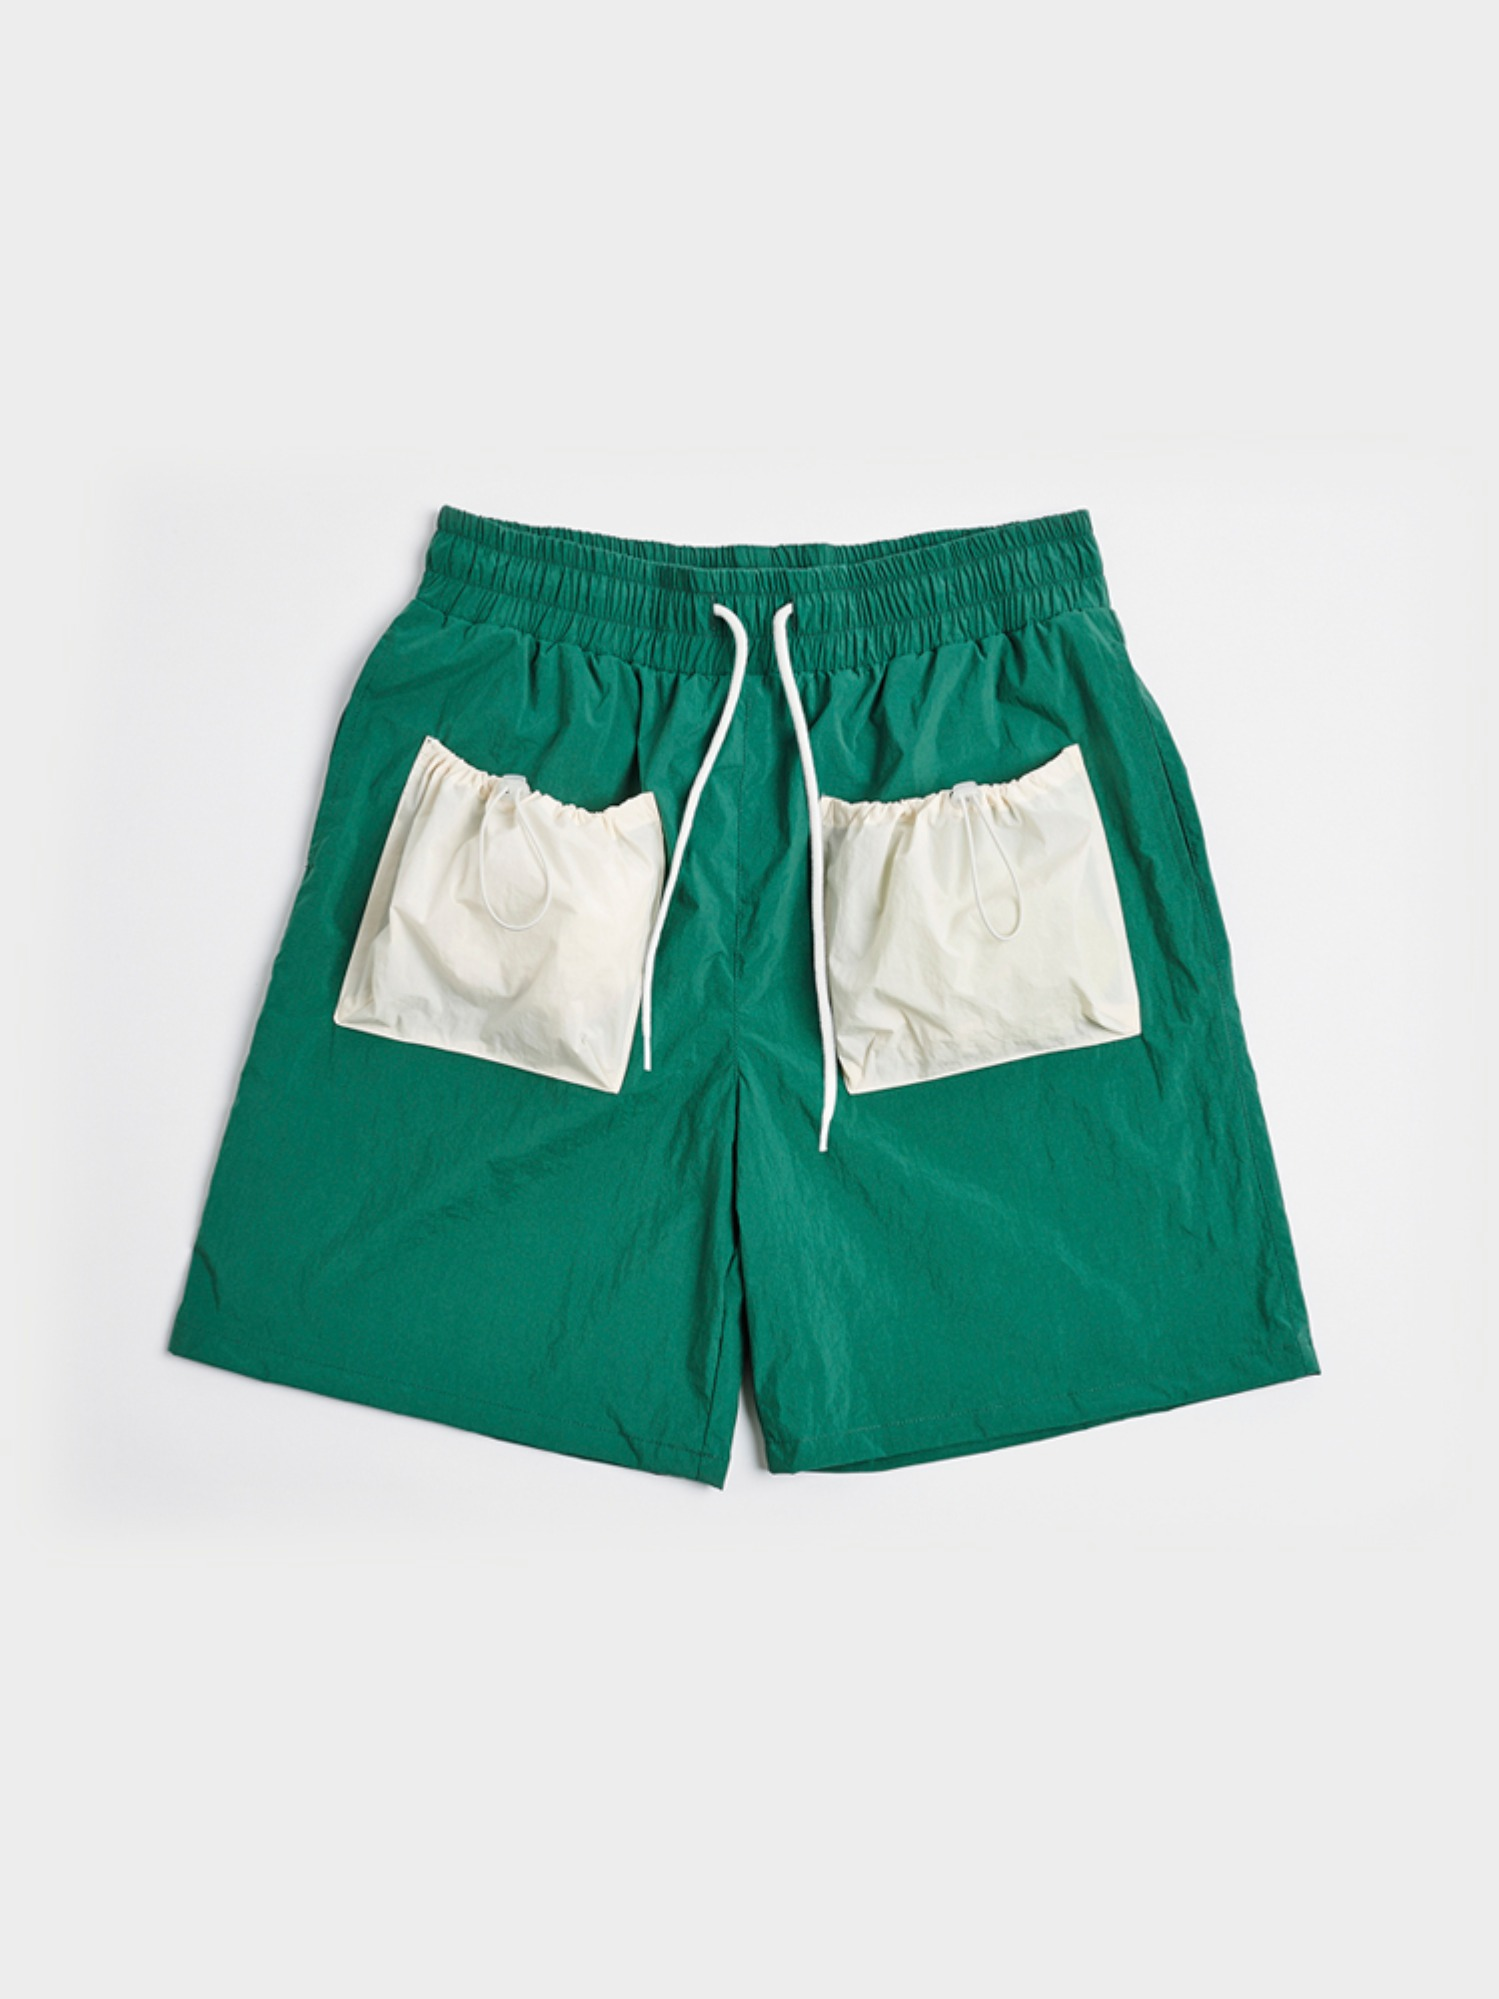 [Open SALE] 2 Pockets Shorts (Forest Green & Cream)